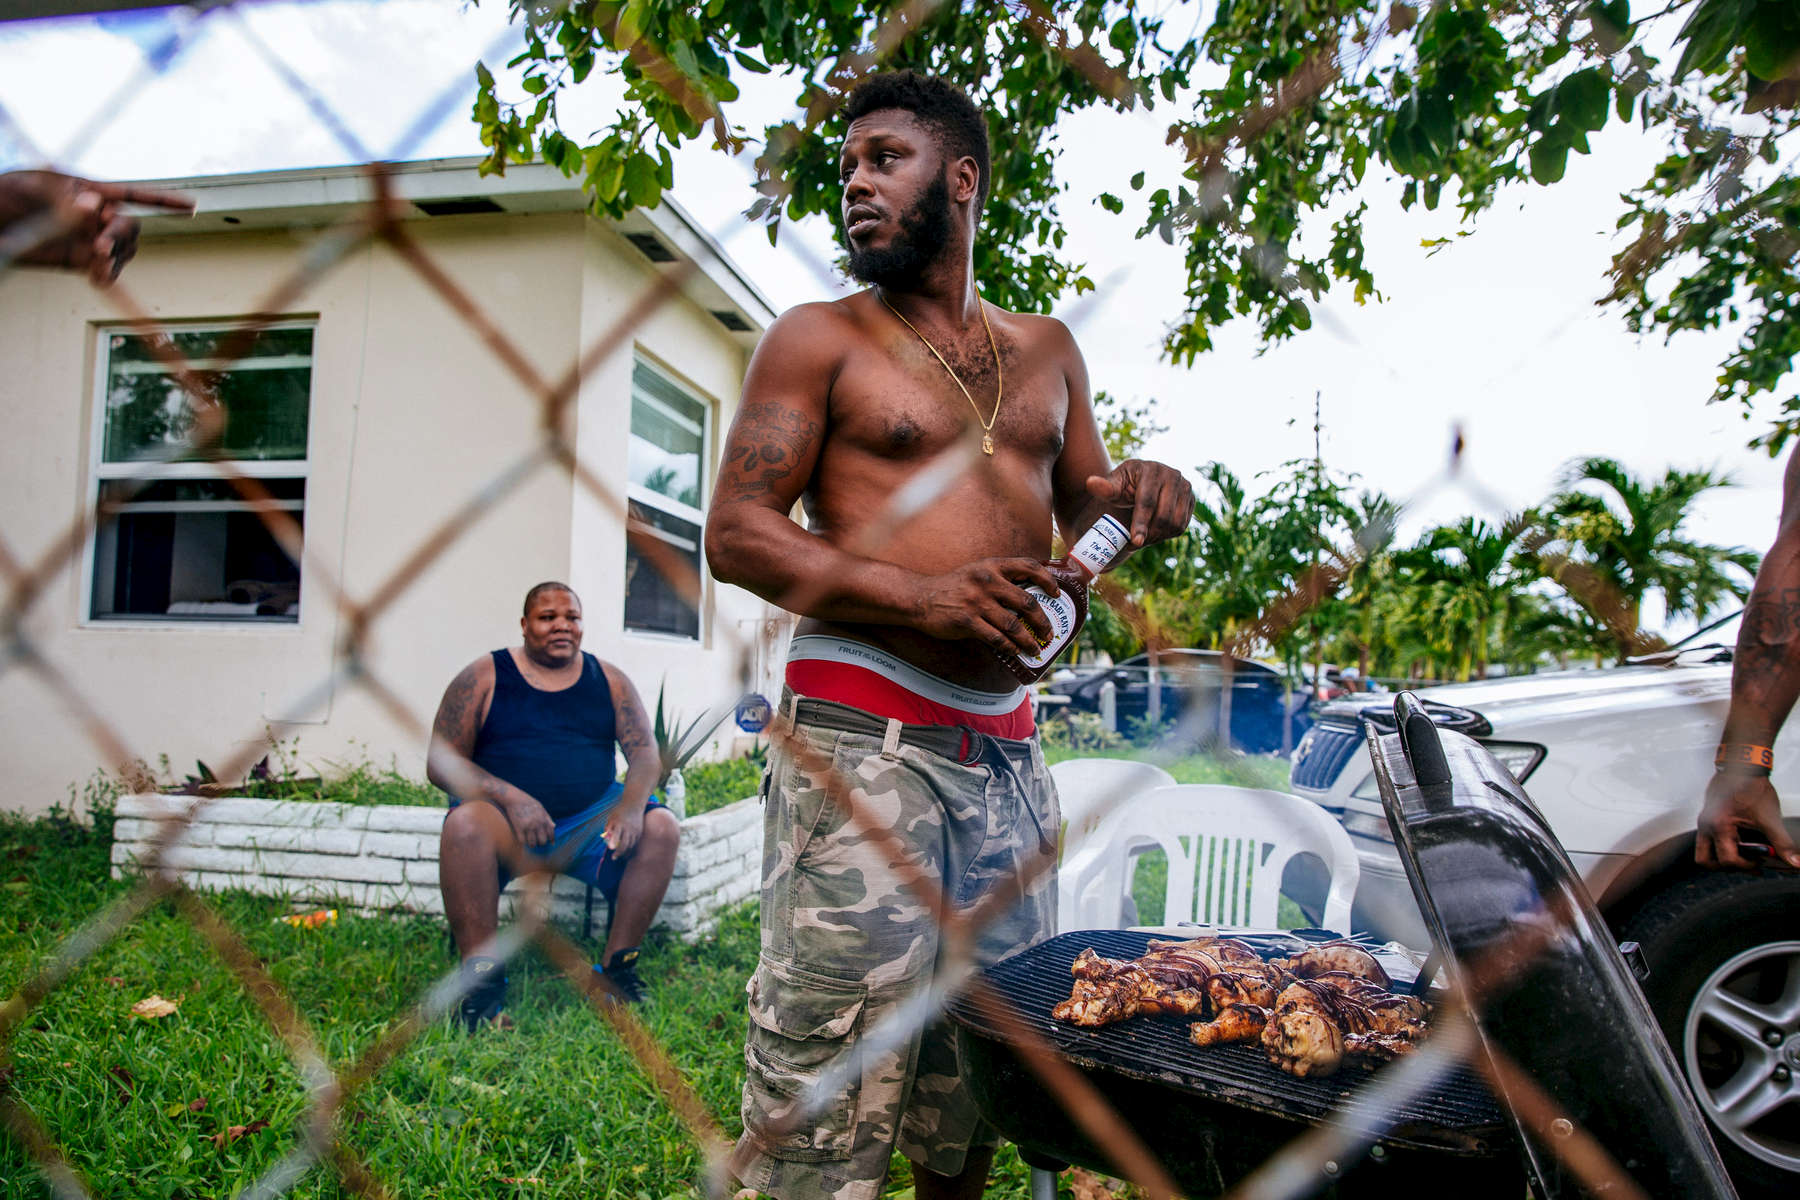 Miami, Fla. - September 11, 2017: Workers after massive power outages following Hurricane Irma in Miami, Fla. CREDIT: Kevin Hagen for The New York TimesNYTSTORM